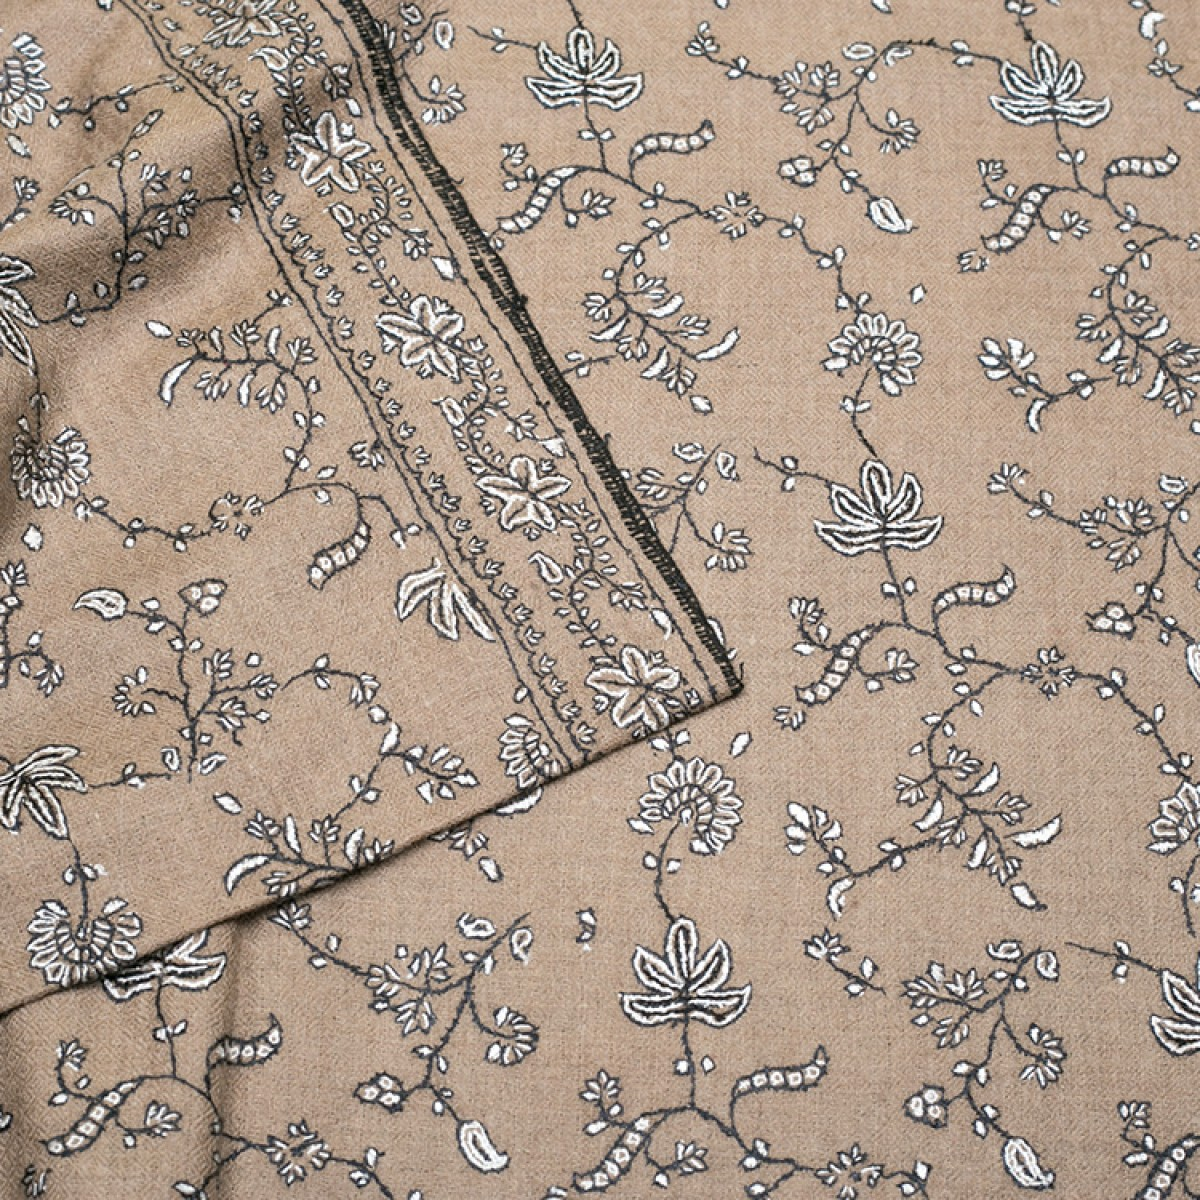 Embroidered Pashmina Shawl - Tortilla Brown